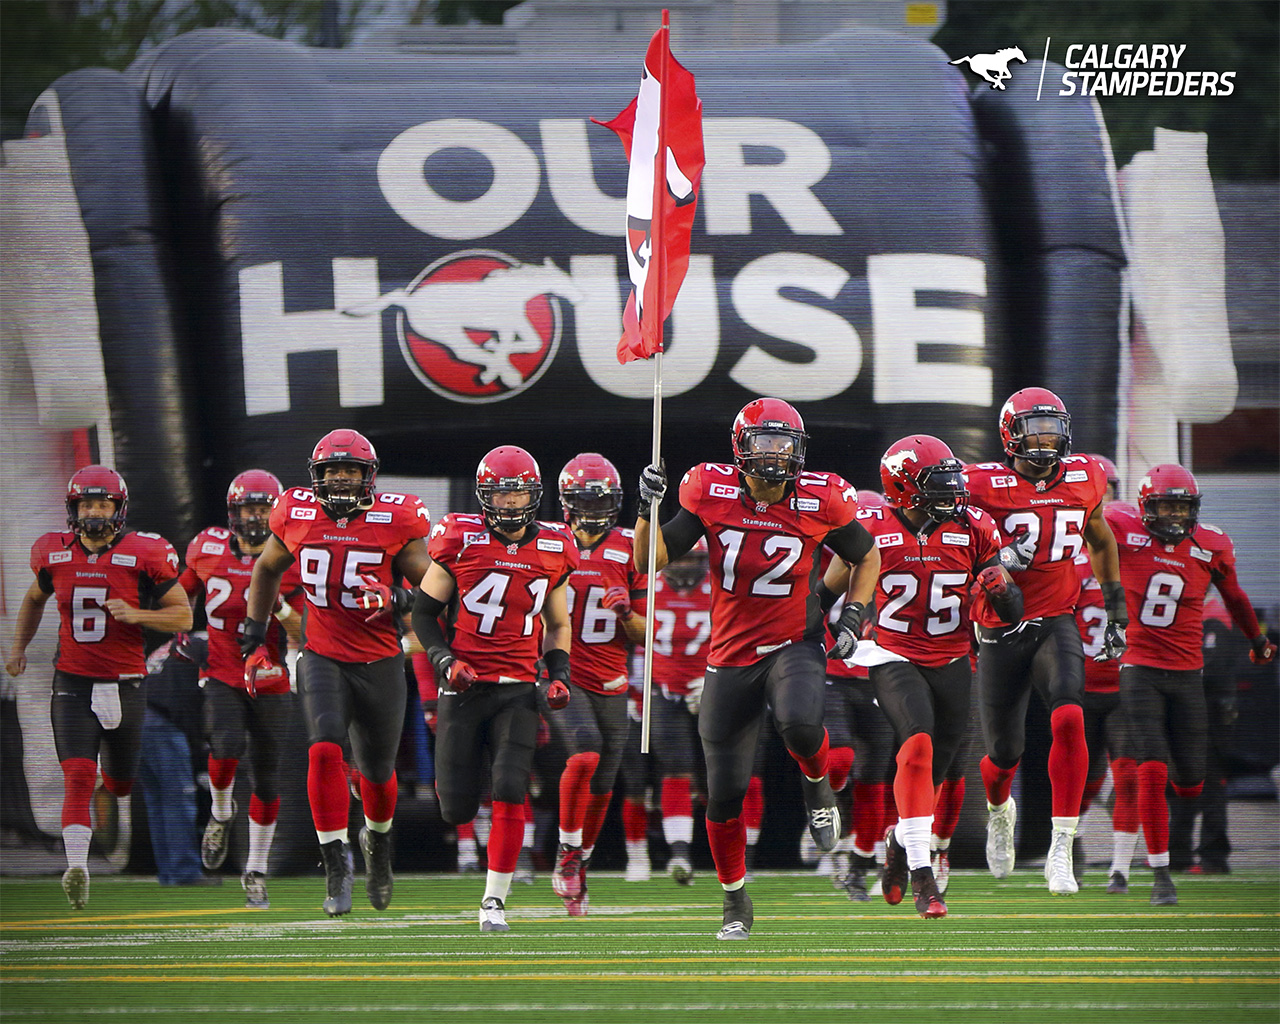 Wallpaper   Calgary Stampeders 1280x1024